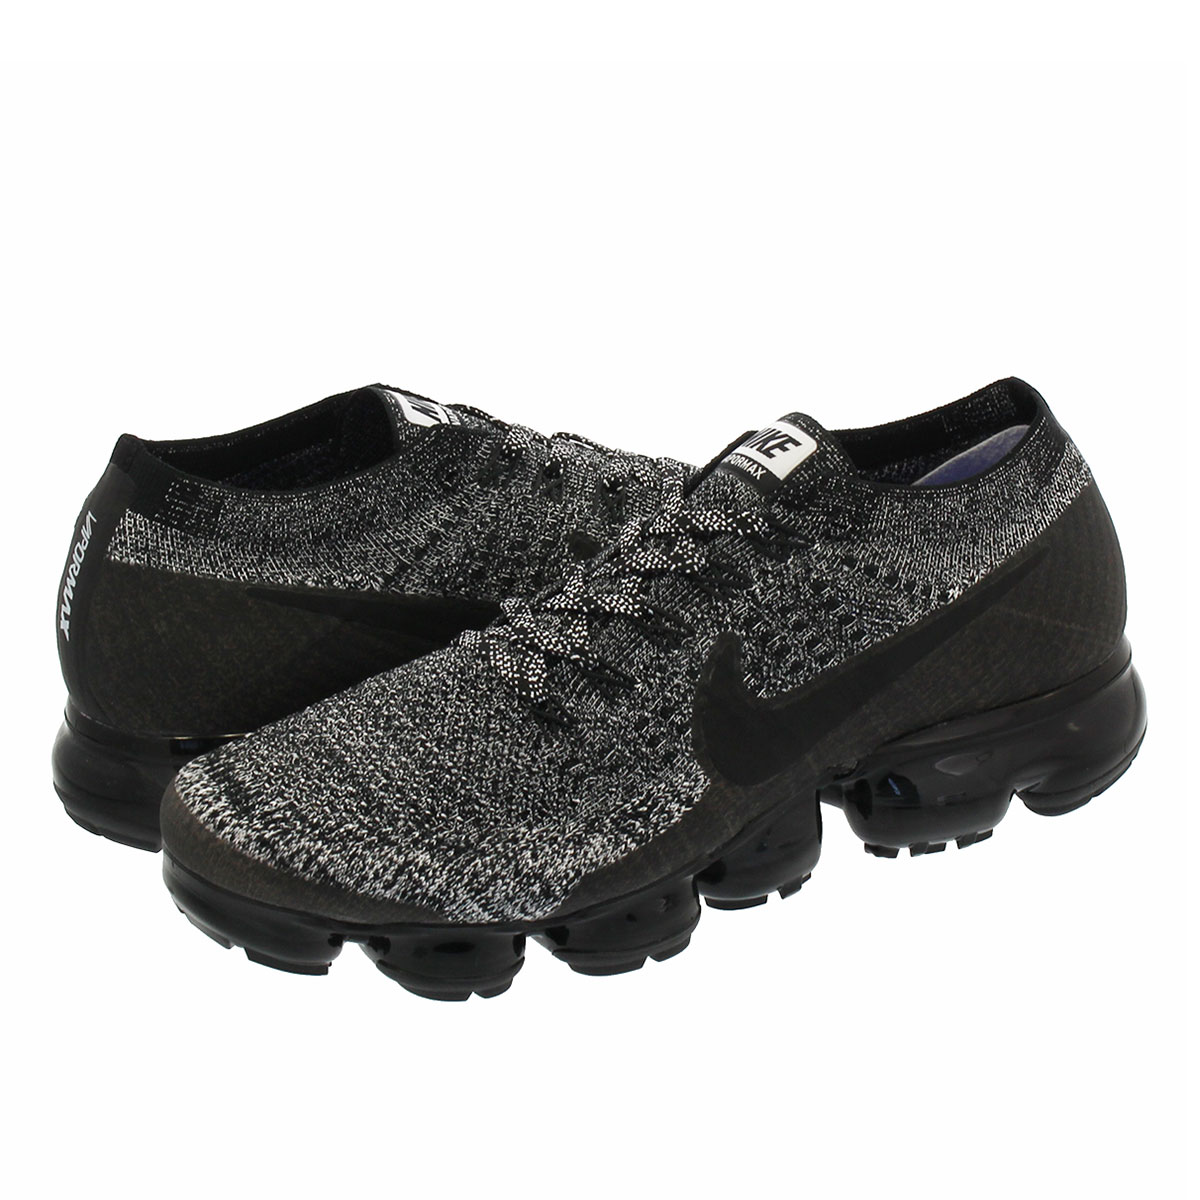 ee22bee0b3ab NIKE WMNS AIR VAPORMAX FLYKNIT Nike women vapor max fried food knit BLACK  WHITE RACER BLUE